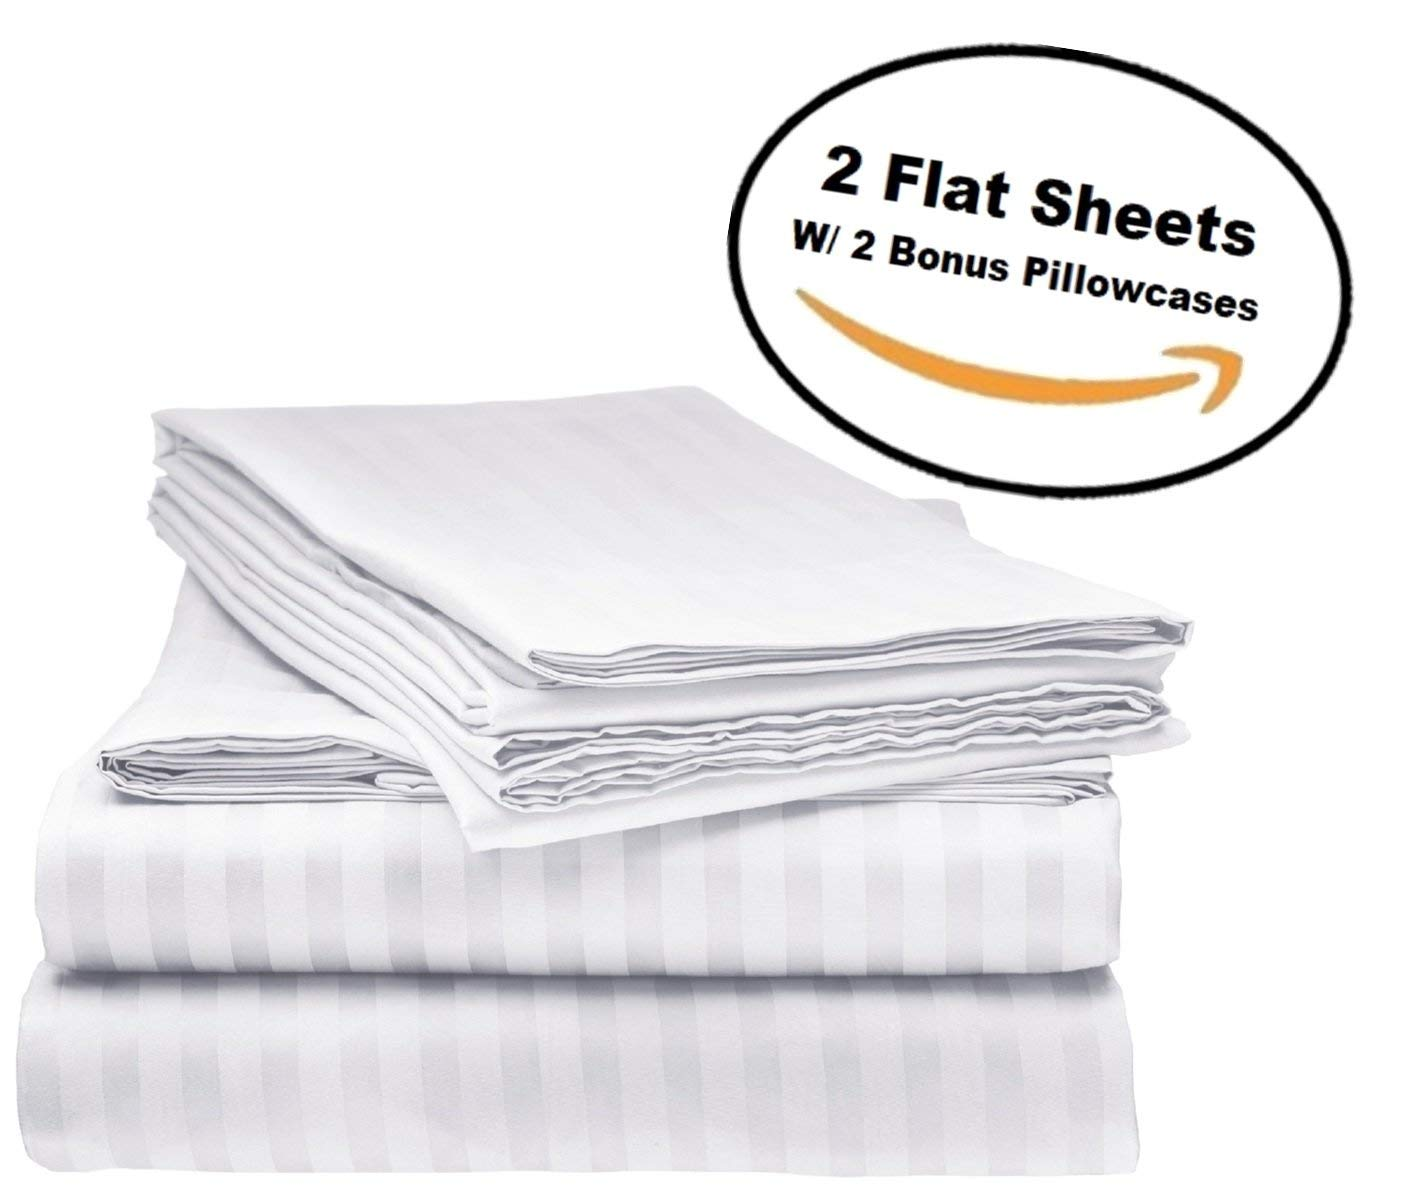 Deluxe 2Pk Flat Bed Sheets - Top Sheet, Soft 1800 Bedding, Highest Quality Brushed Microfiber, Hypoallergenic, Wrinkle, Fade, Stain Resistant - Bonus 2 Free pillowcases - (Full Size White)